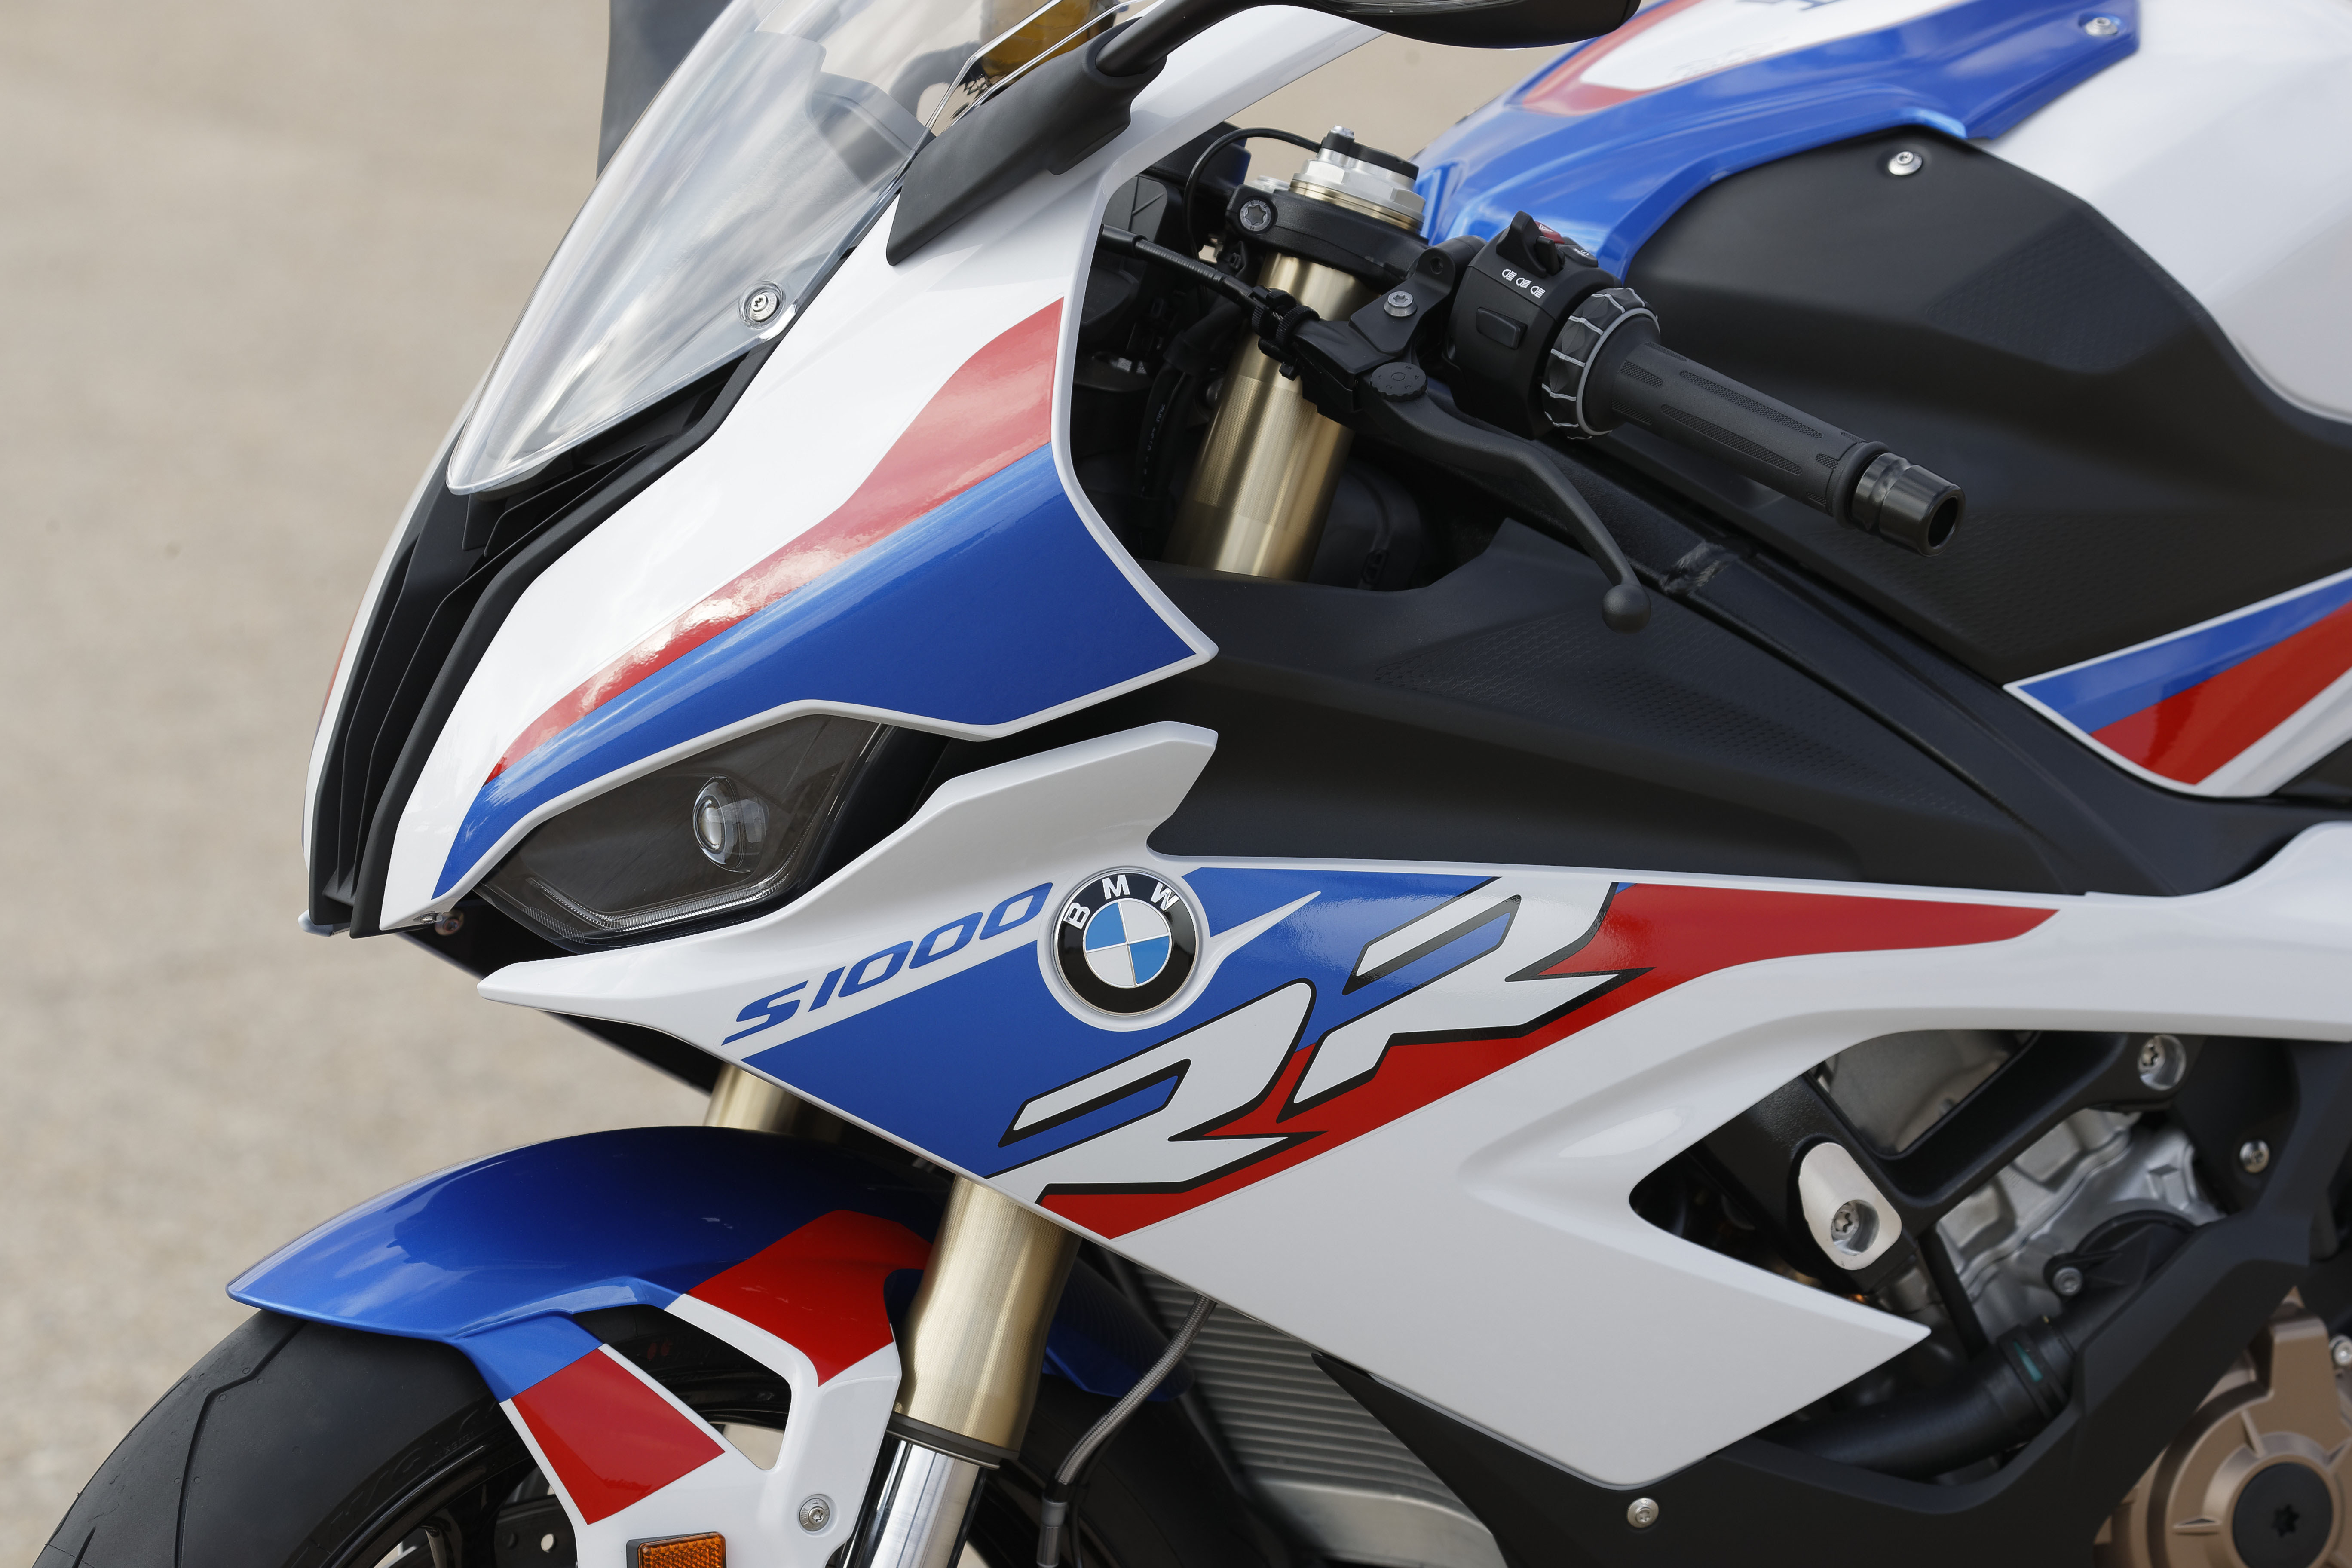 2019 Bmw S1000rr First Look Motorcycle Com